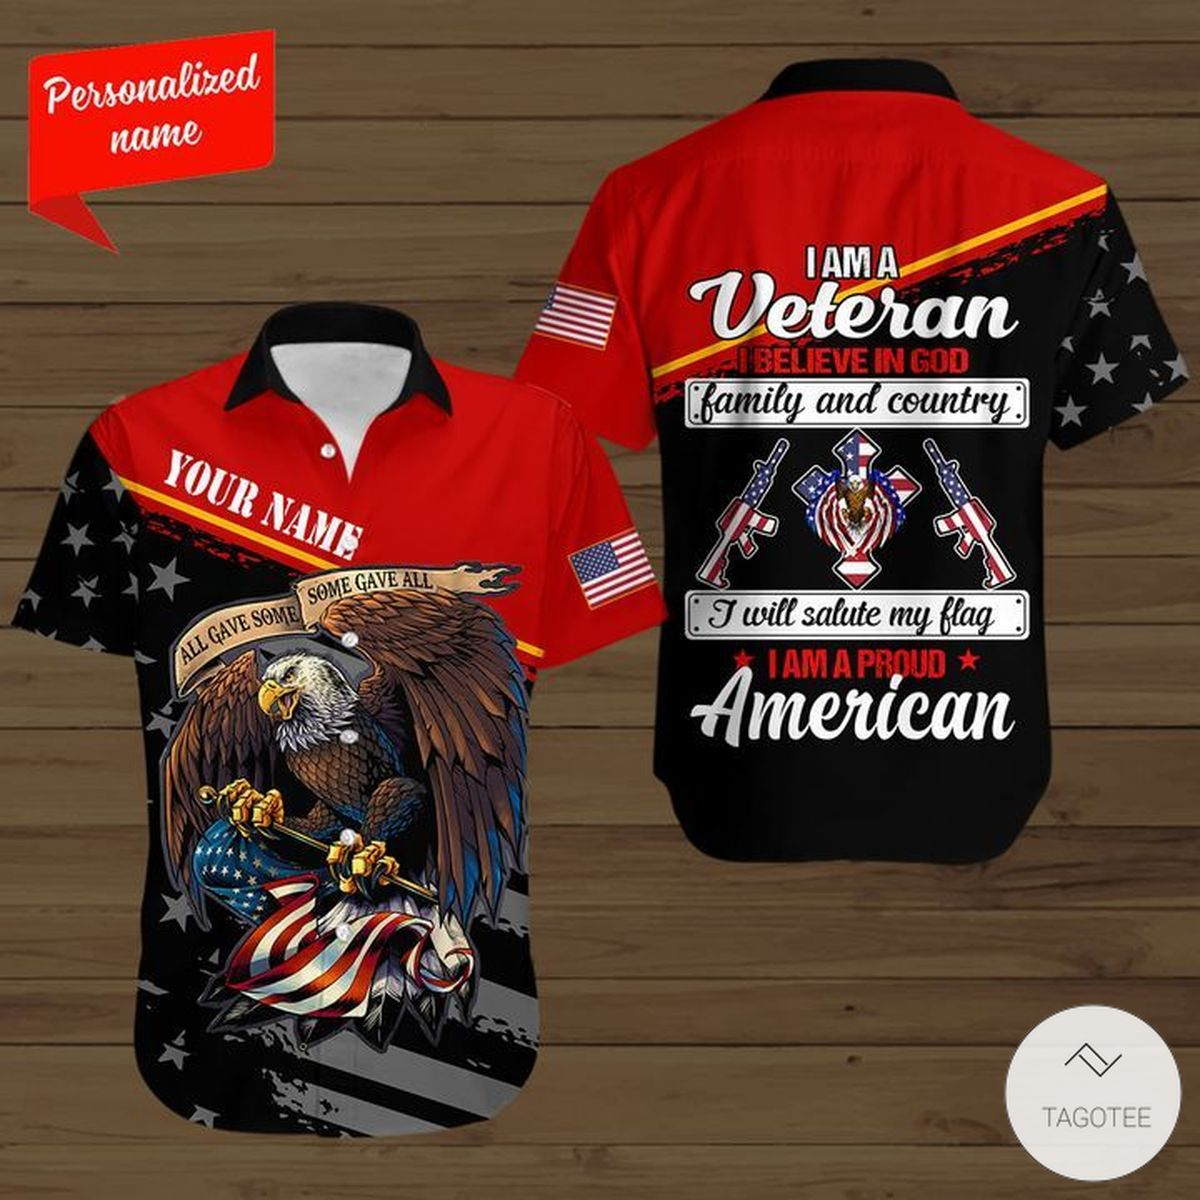 Personalized Name All Give Some Some Gave All Eagle Flag I Am A Veteran Button Shirt